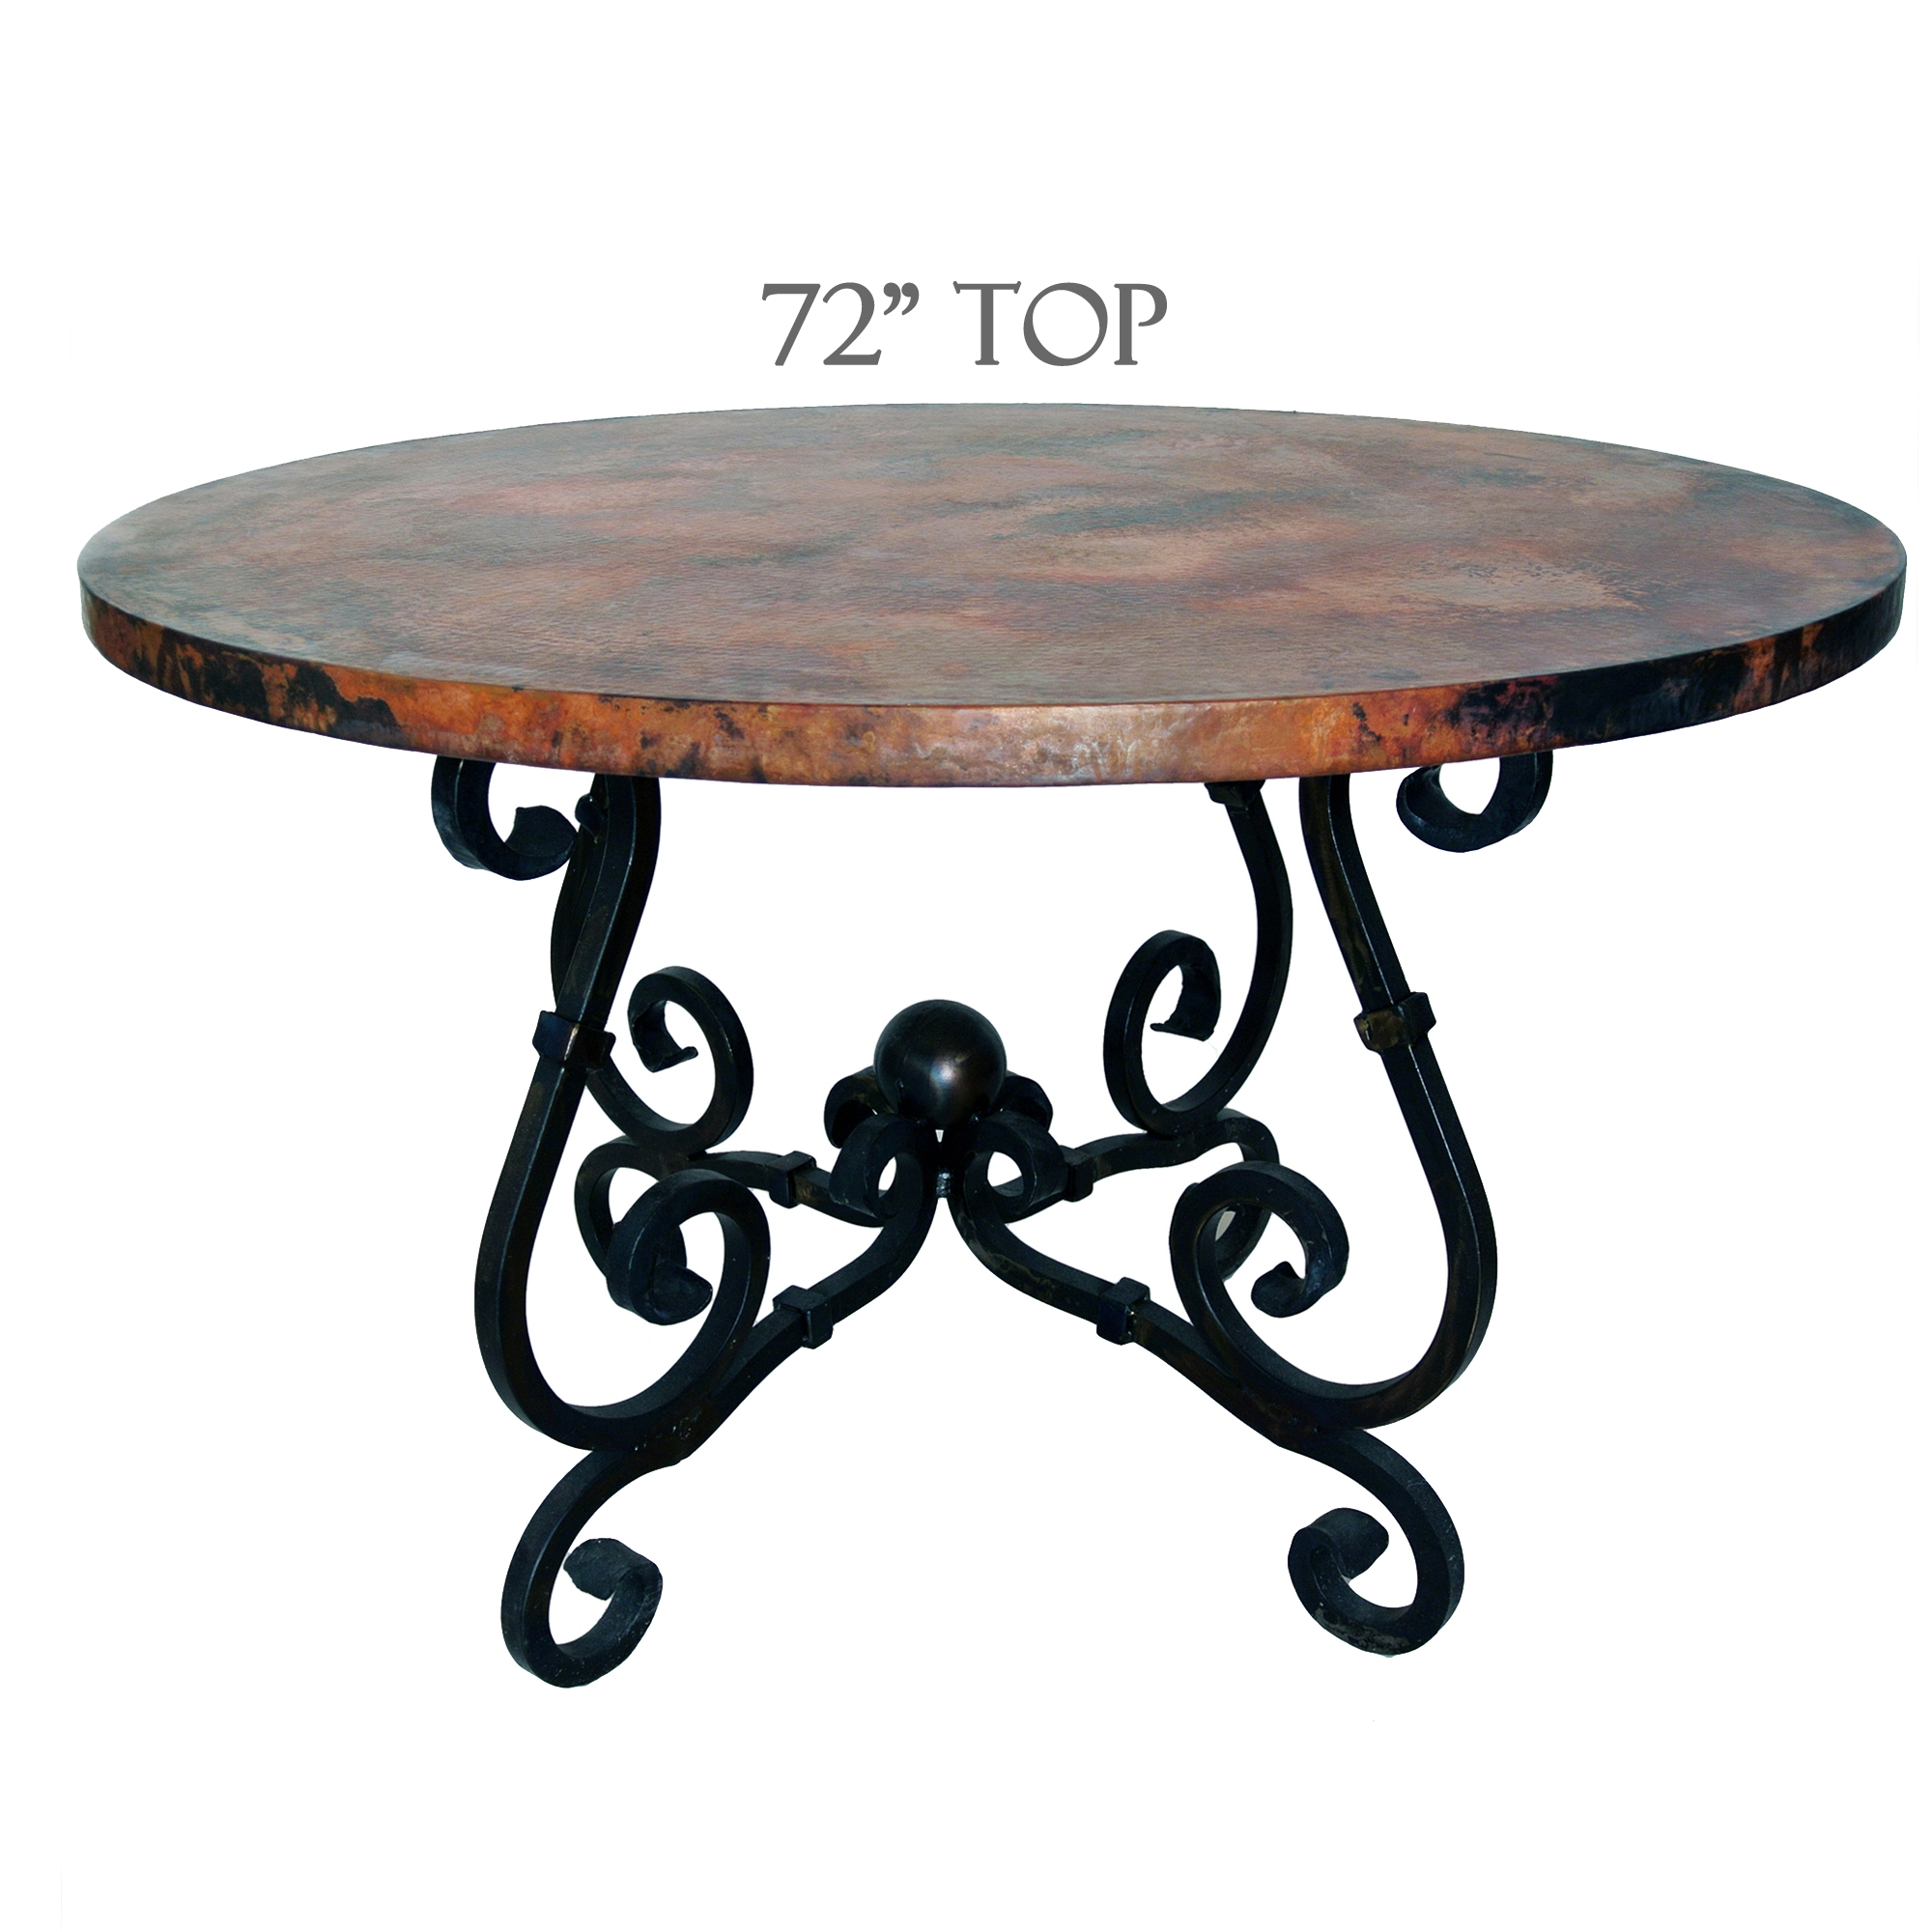 French Dining Table 72in Diameter Copper Top Timeless Wrought Iron